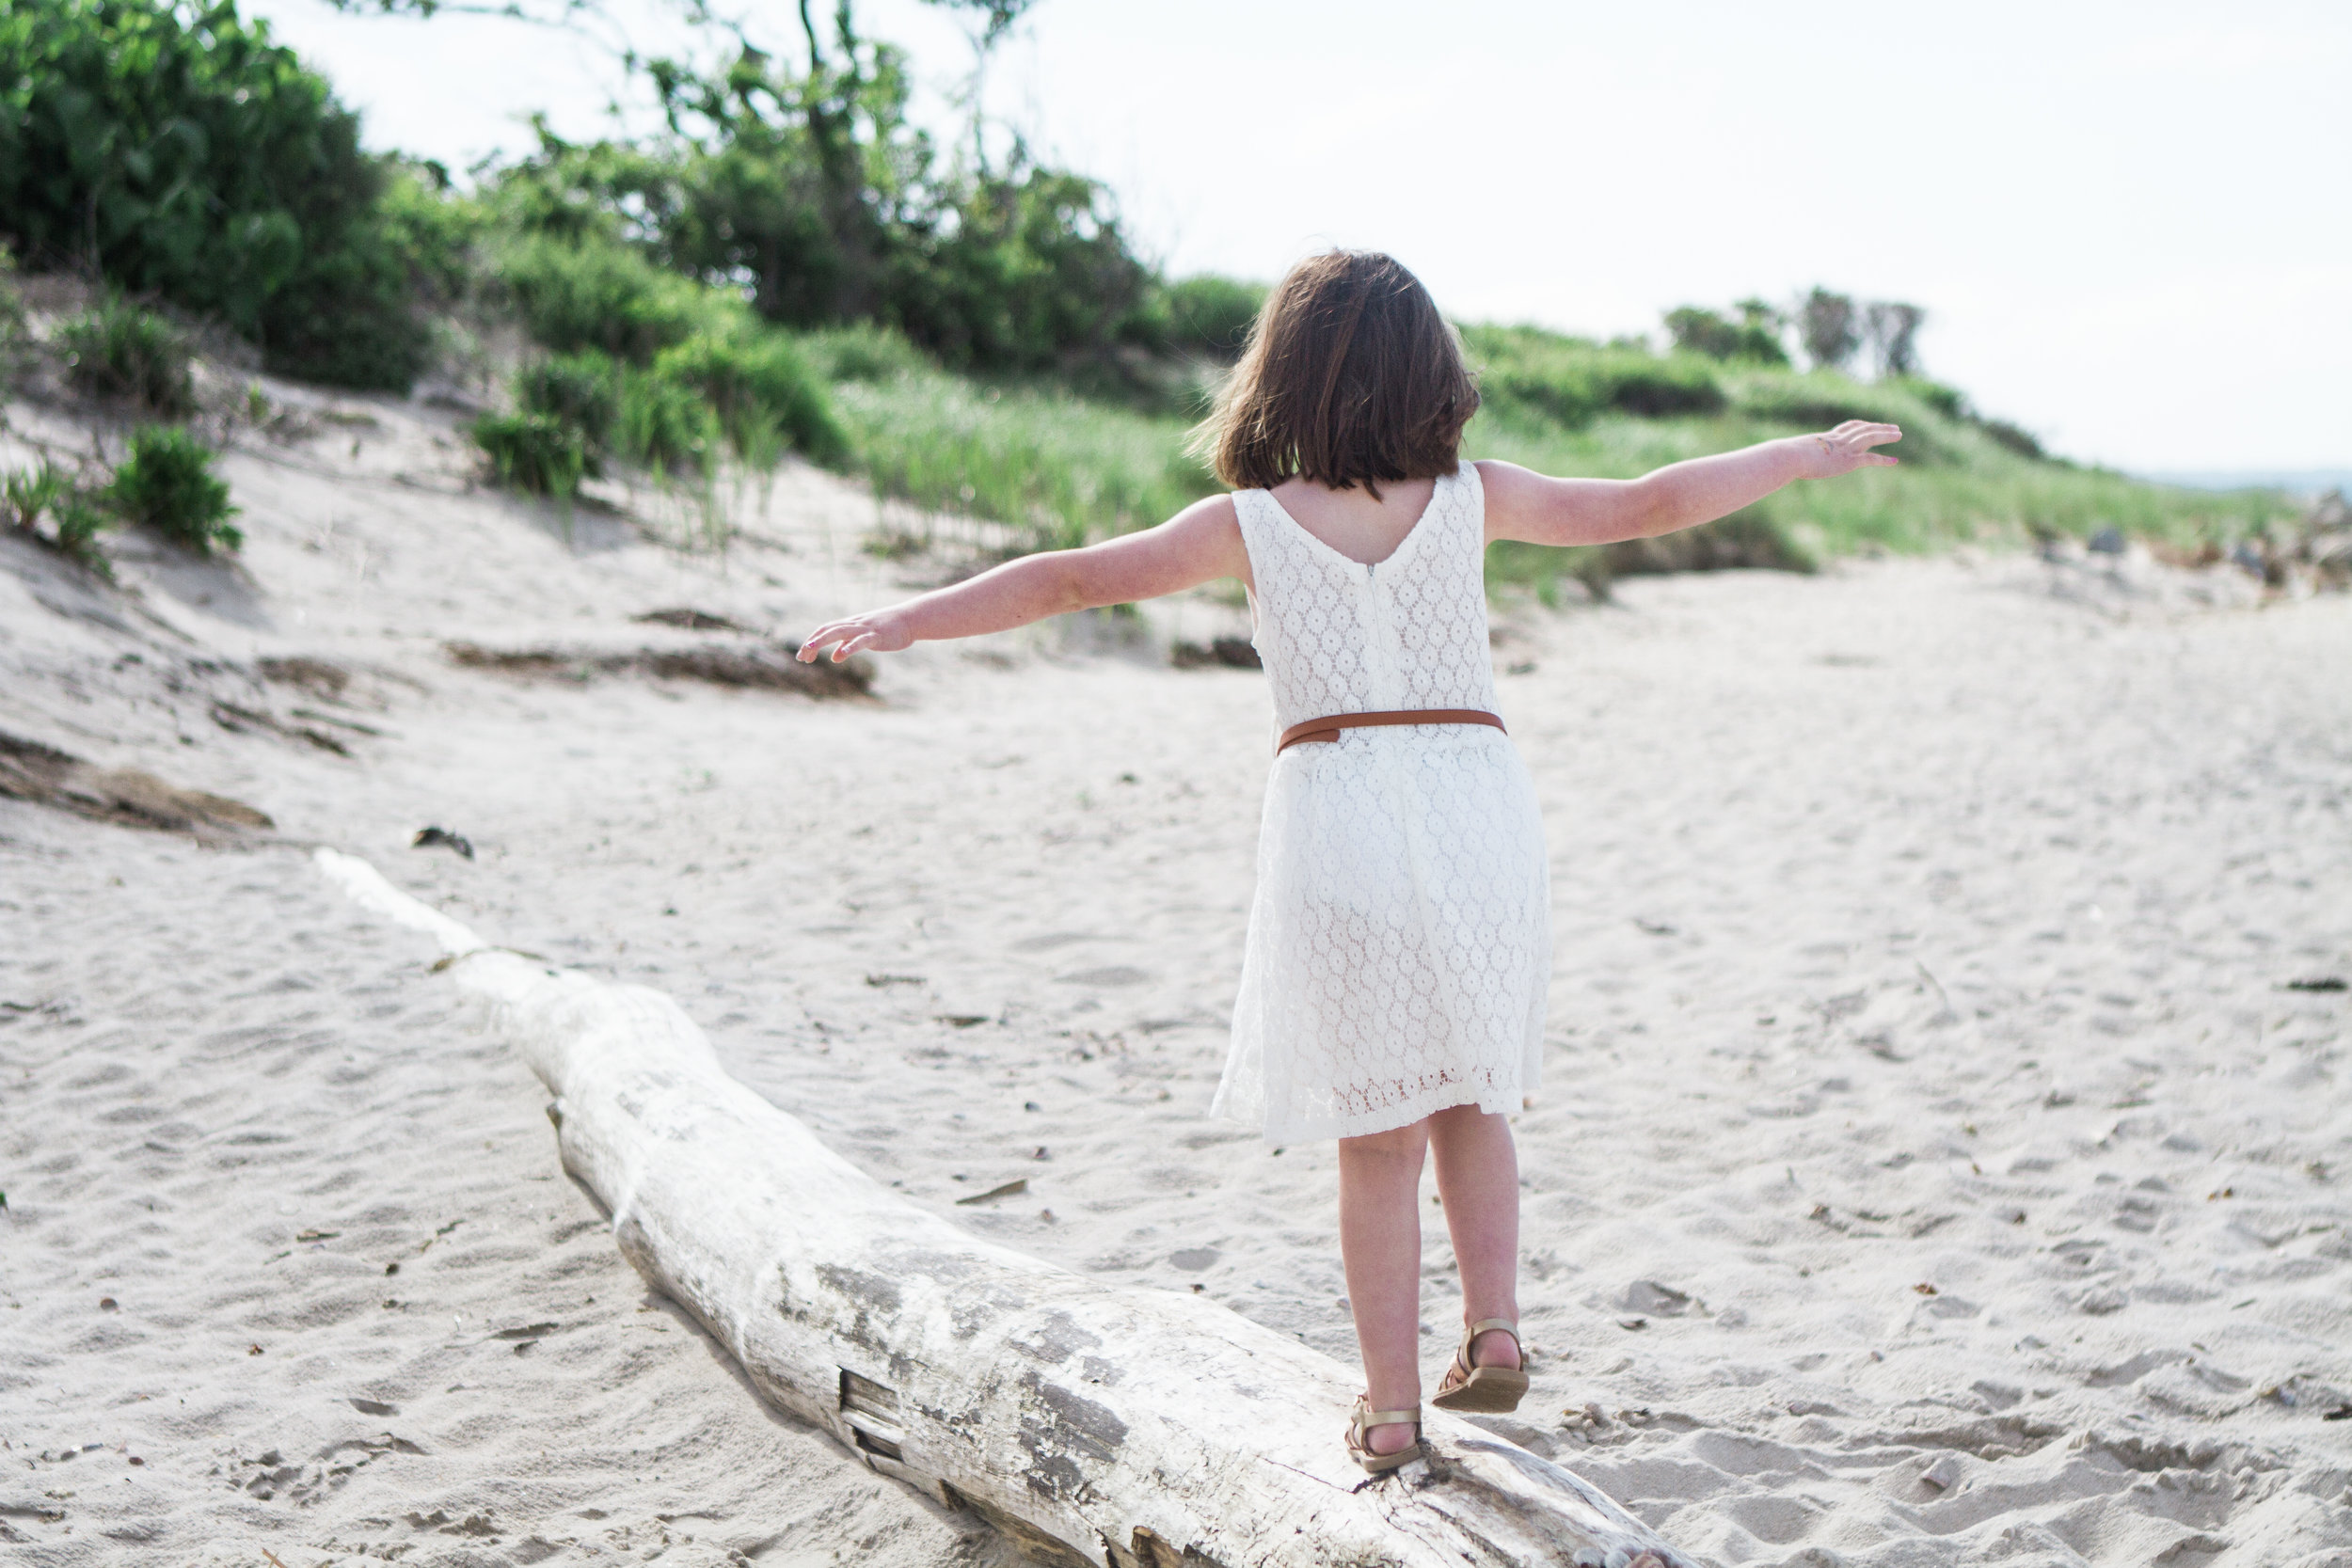 Spring Family Beach Session at Harkness Memorial State Park Waterford Connecticut Coastal New England Shannon Sorensen Photography